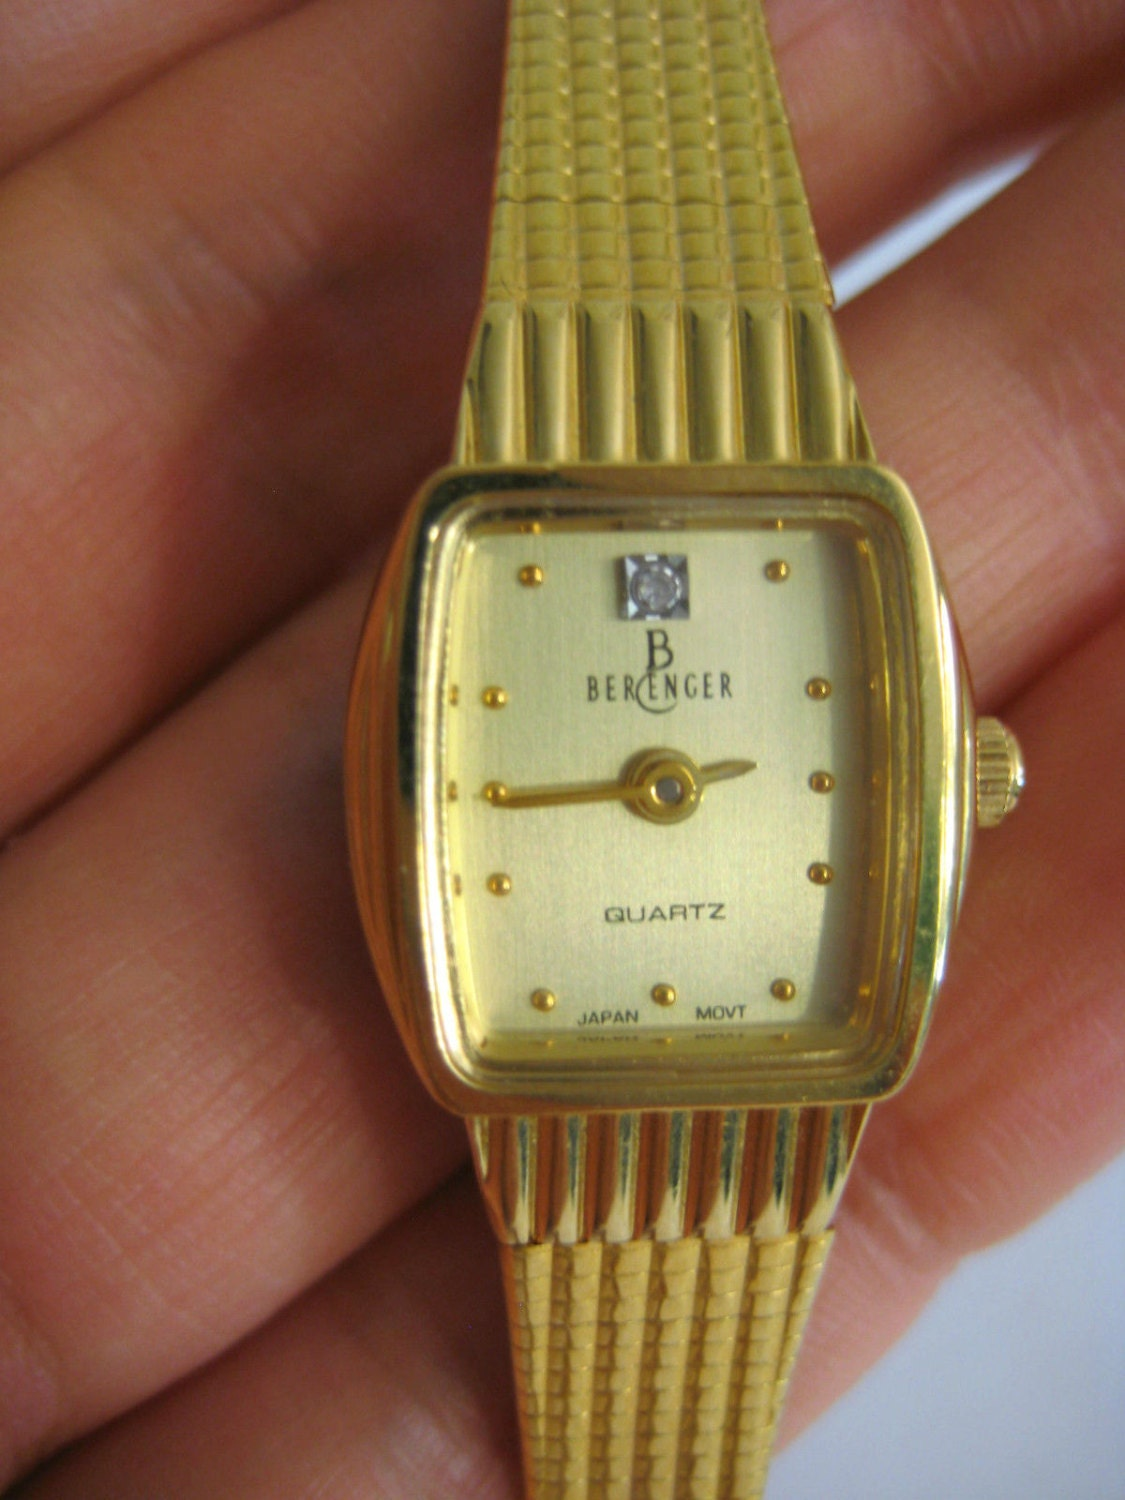 Berenger quartz Diamond lady\'s watch Japan movt. great